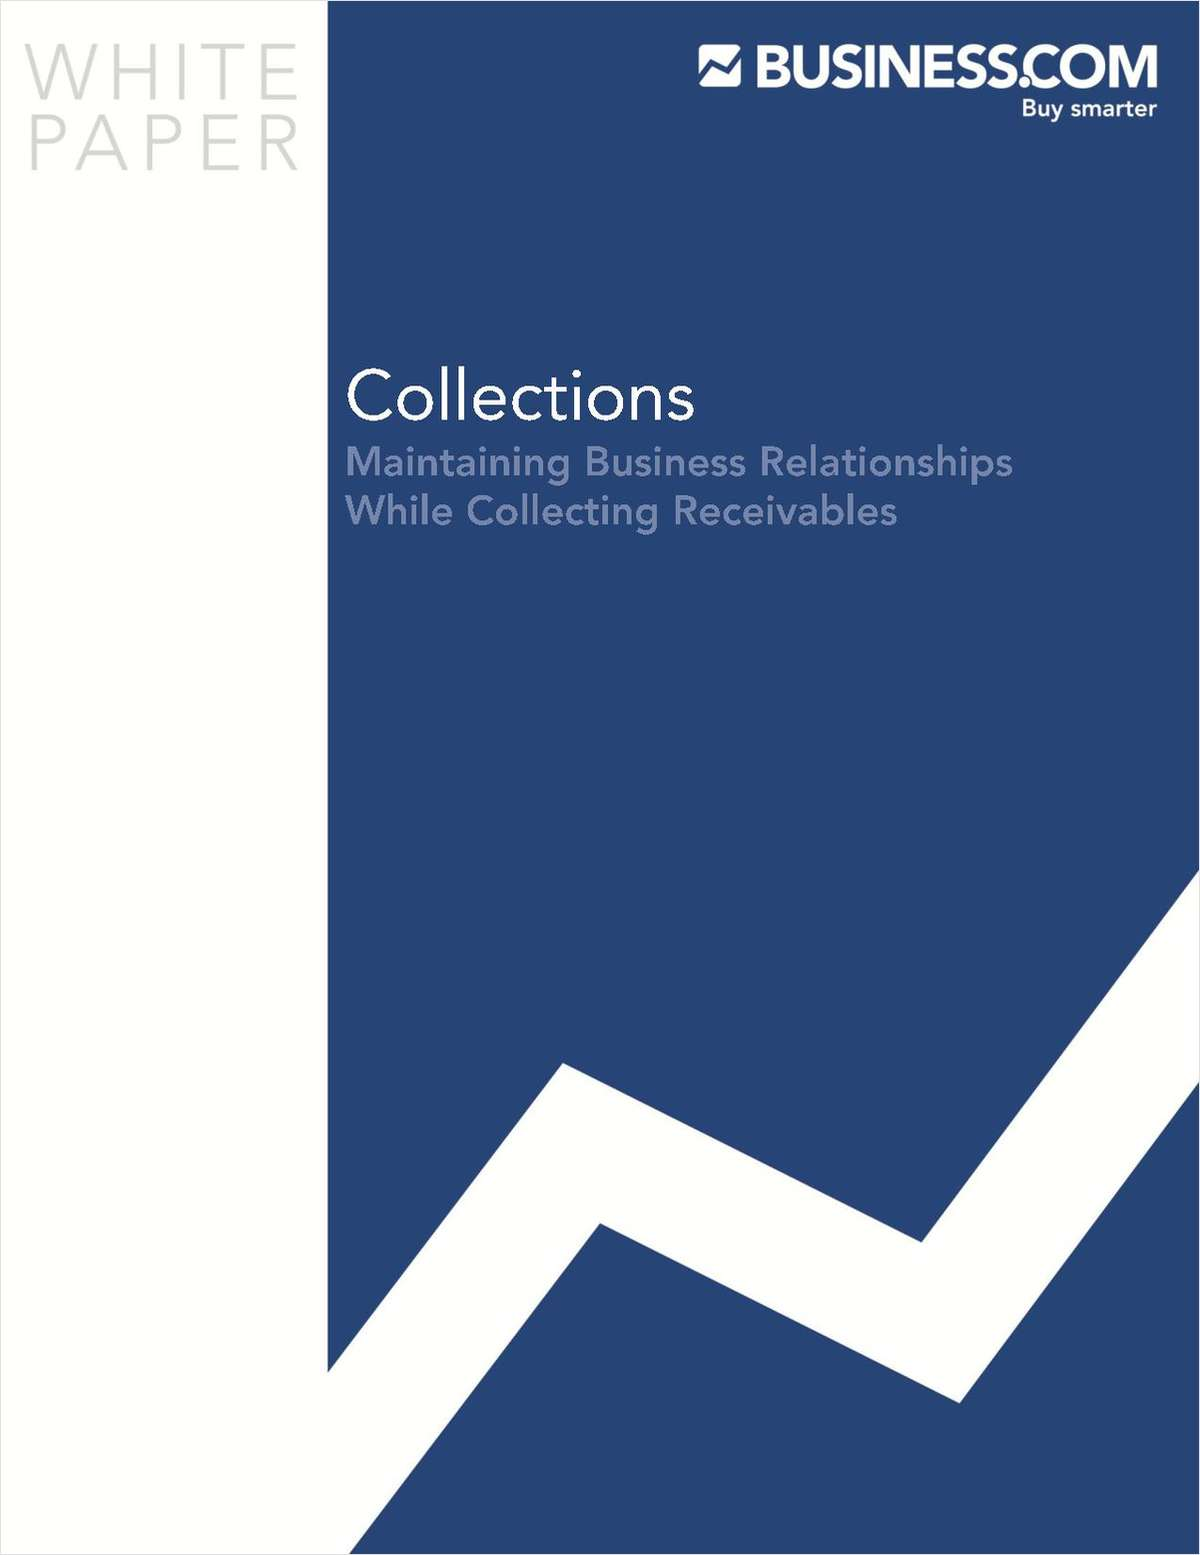 Collections: Maintaining Business Relationships While Collecting Receivables